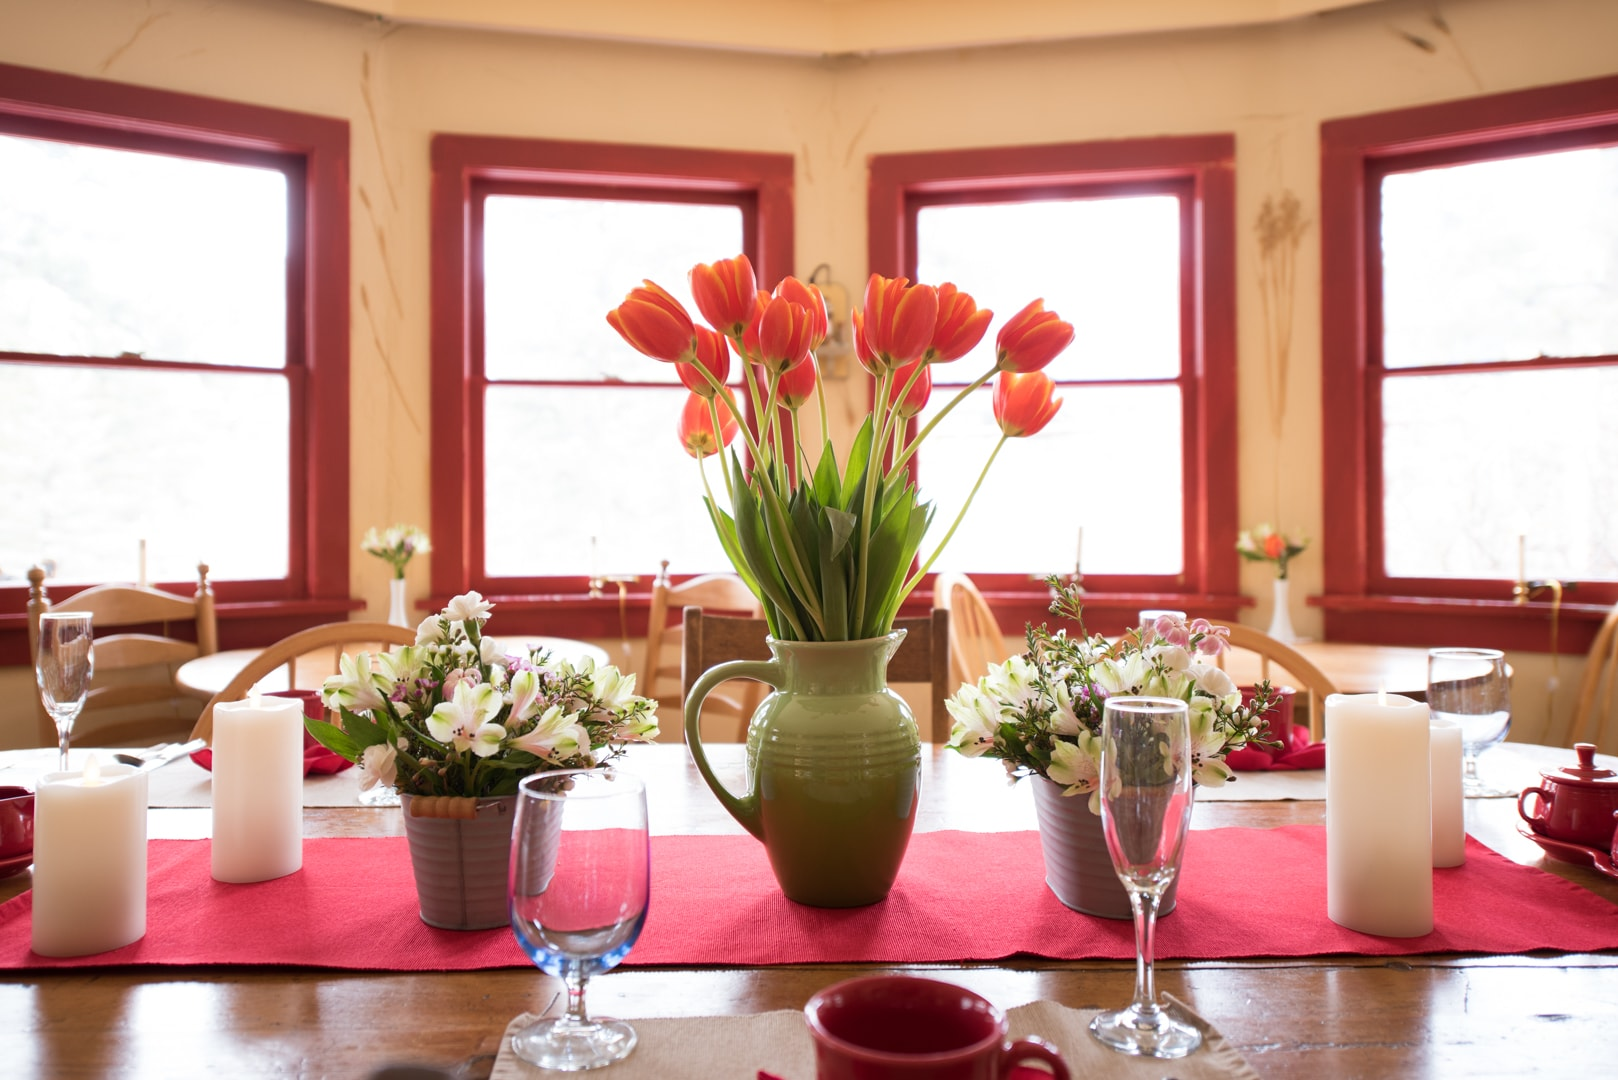 flowers decorate the dining table